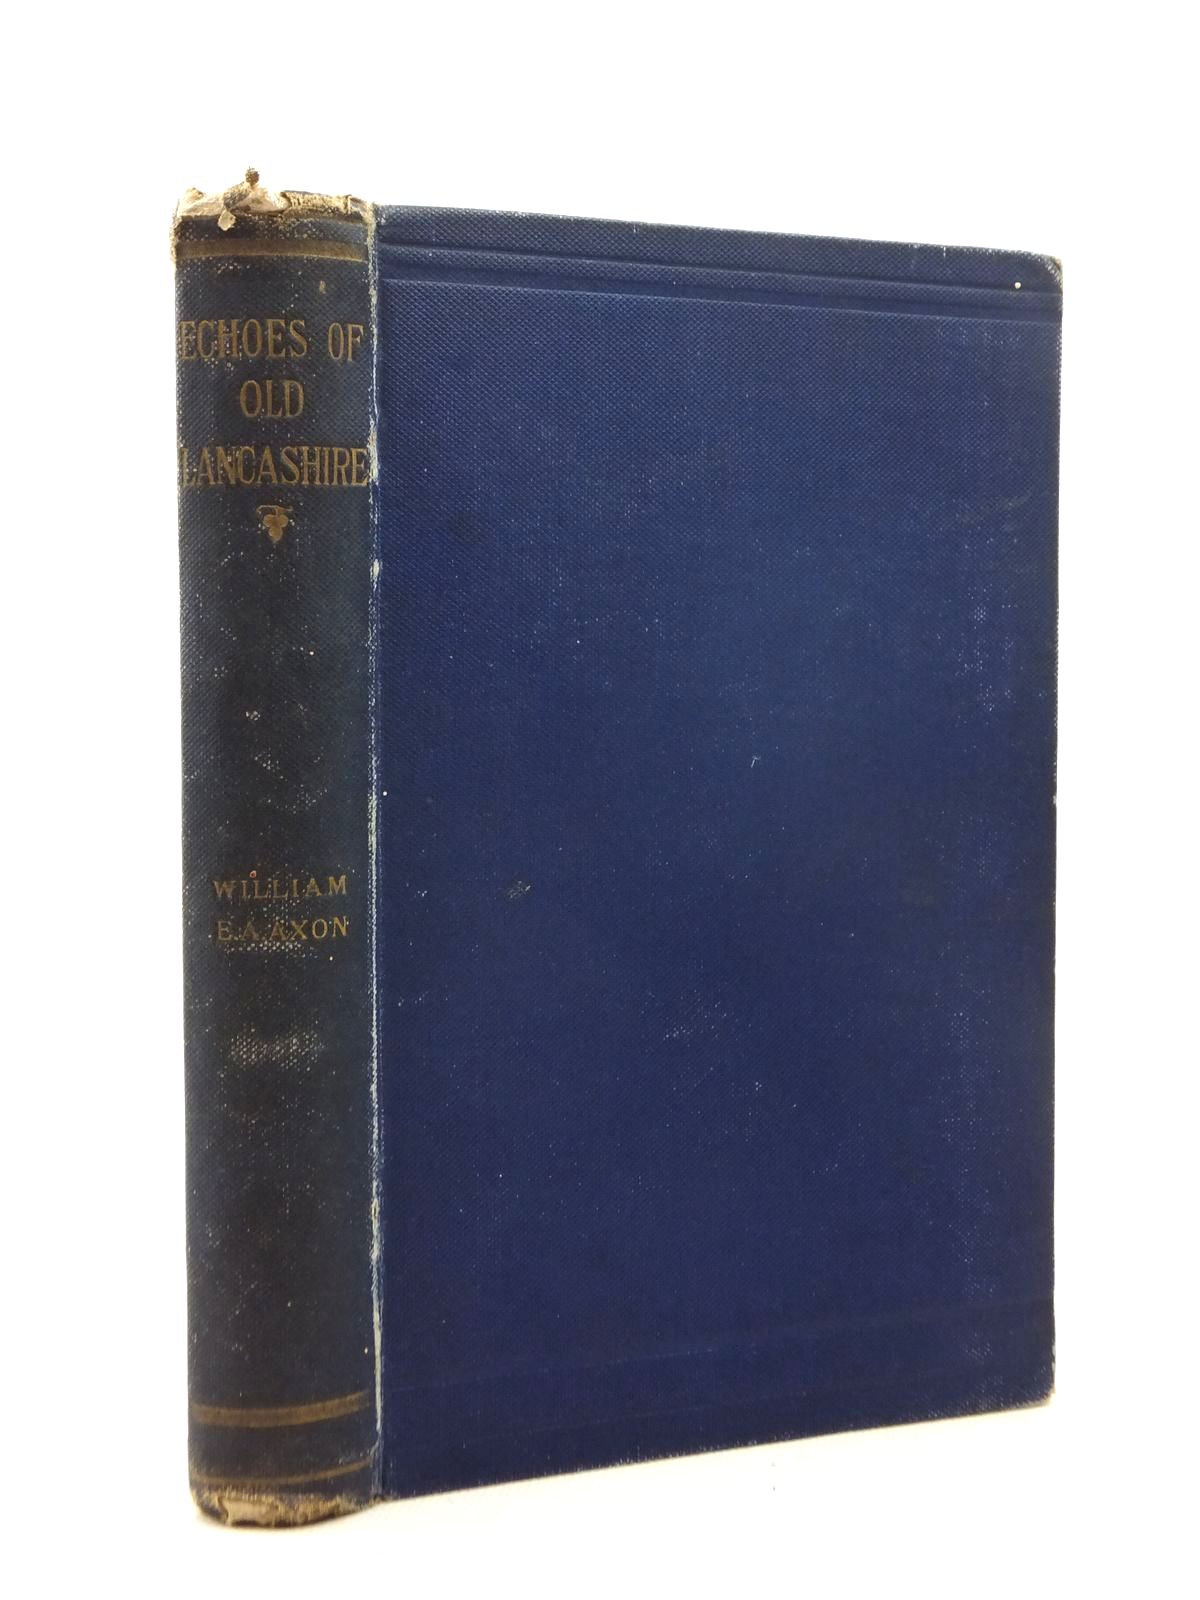 Photo of ECHOES OF OLD LANCASHIRE written by Axon, William E.A. published by William Andrews & Co. (STOCK CODE: 1208784)  for sale by Stella & Rose's Books